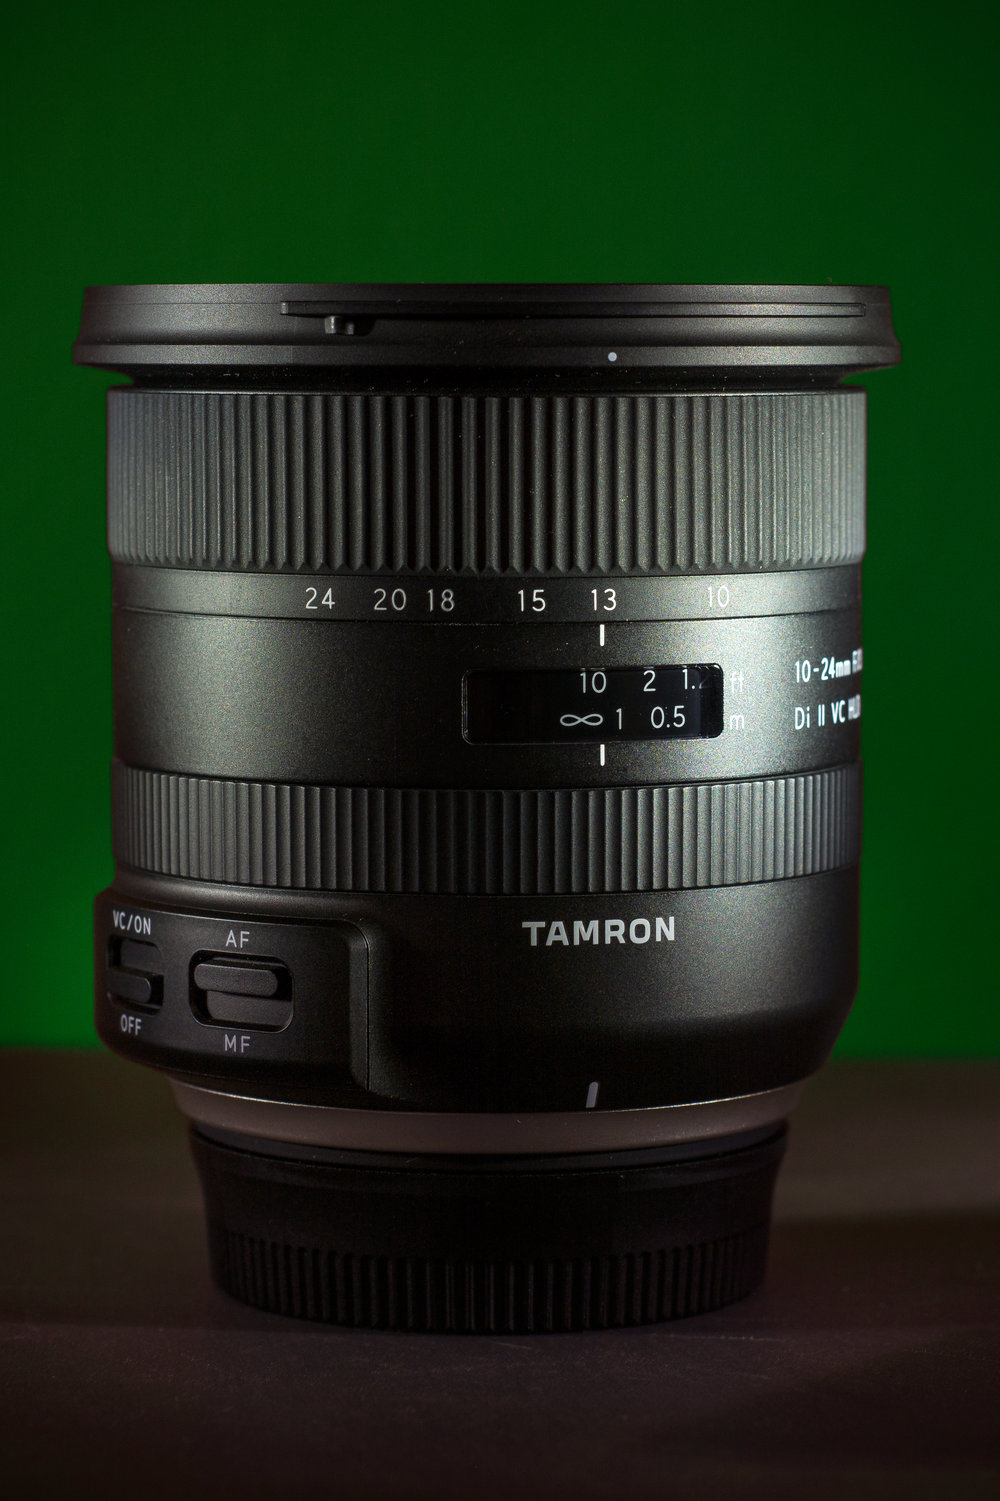 The new Tamron 10-24mm f/3.5-4.5 Di II VC HLD (model B023).